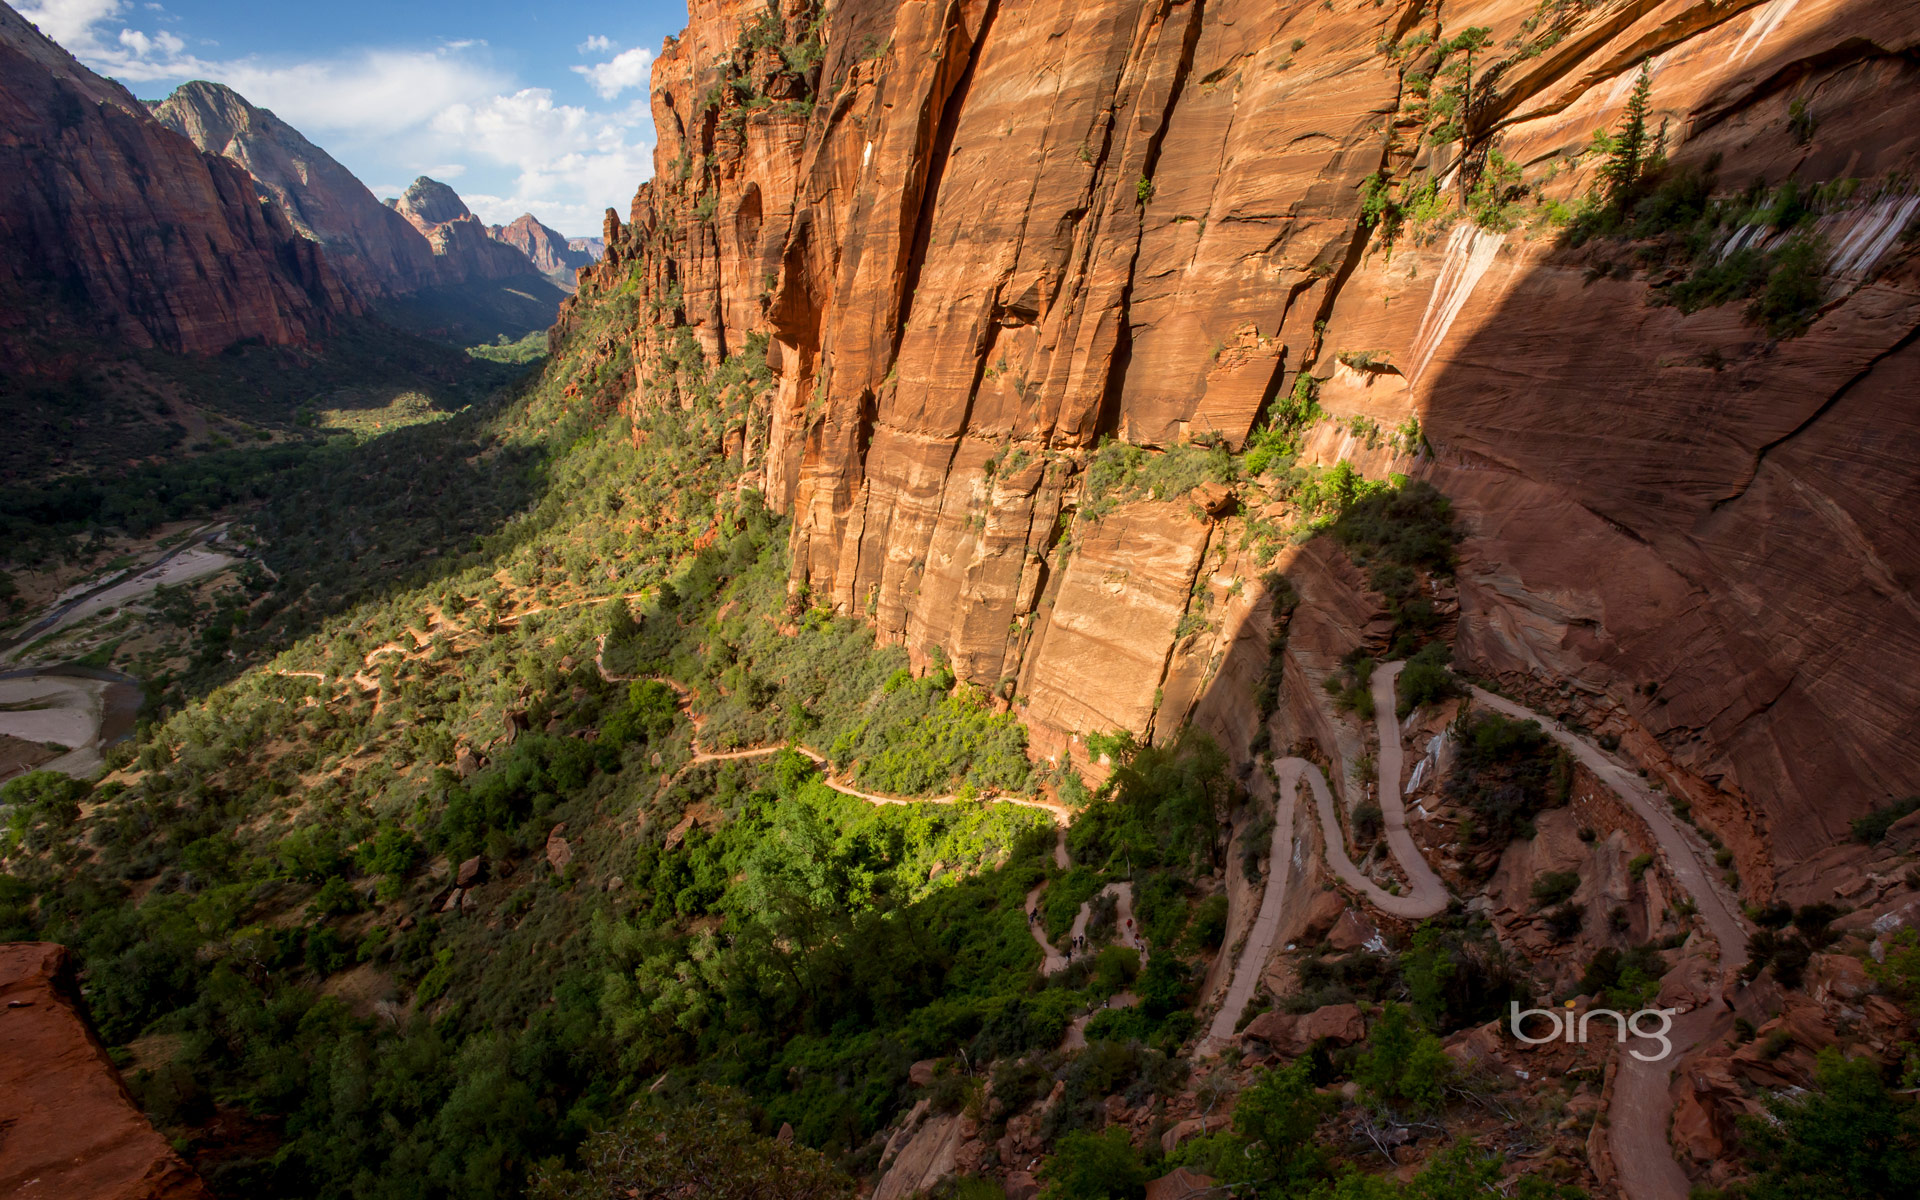 Angels Landing Trail in Zion National Park, Utah